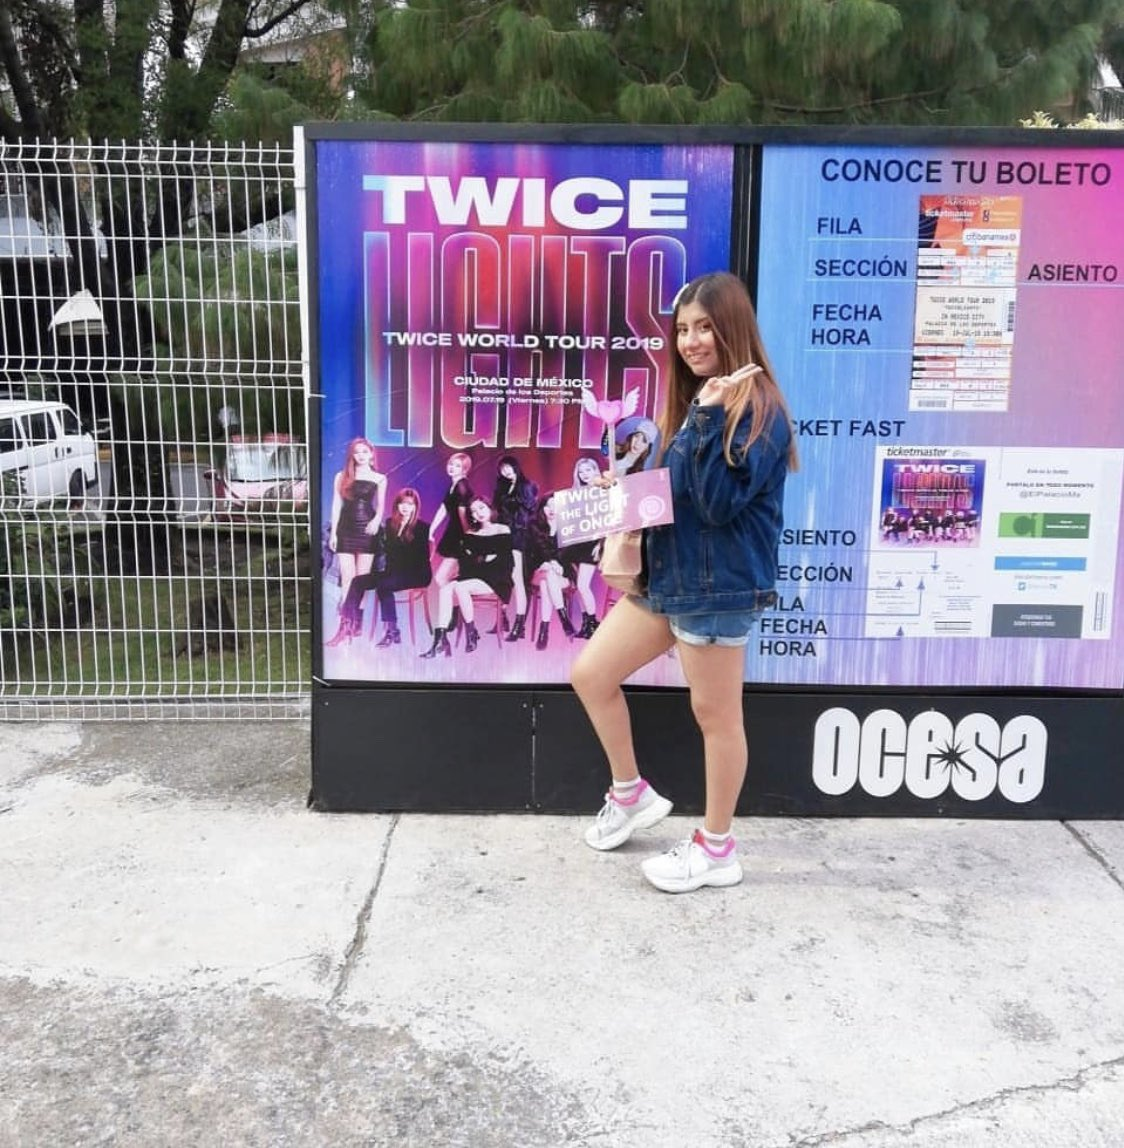 MEXICO ONCE!  ⁣ ⁣ This ONCE showed off her TWICE spirit all show long! These ladies loved supporting TWICE with banners!⁣ This cutie was so excited to see TWICE for the first time!⁣ Even this ONCE in training enjoyed the show!⁣ ⁣ #TWICEWORLDTOUR2019 #TWICEinMEXICO<br>http://pic.twitter.com/8A8vtMHUim